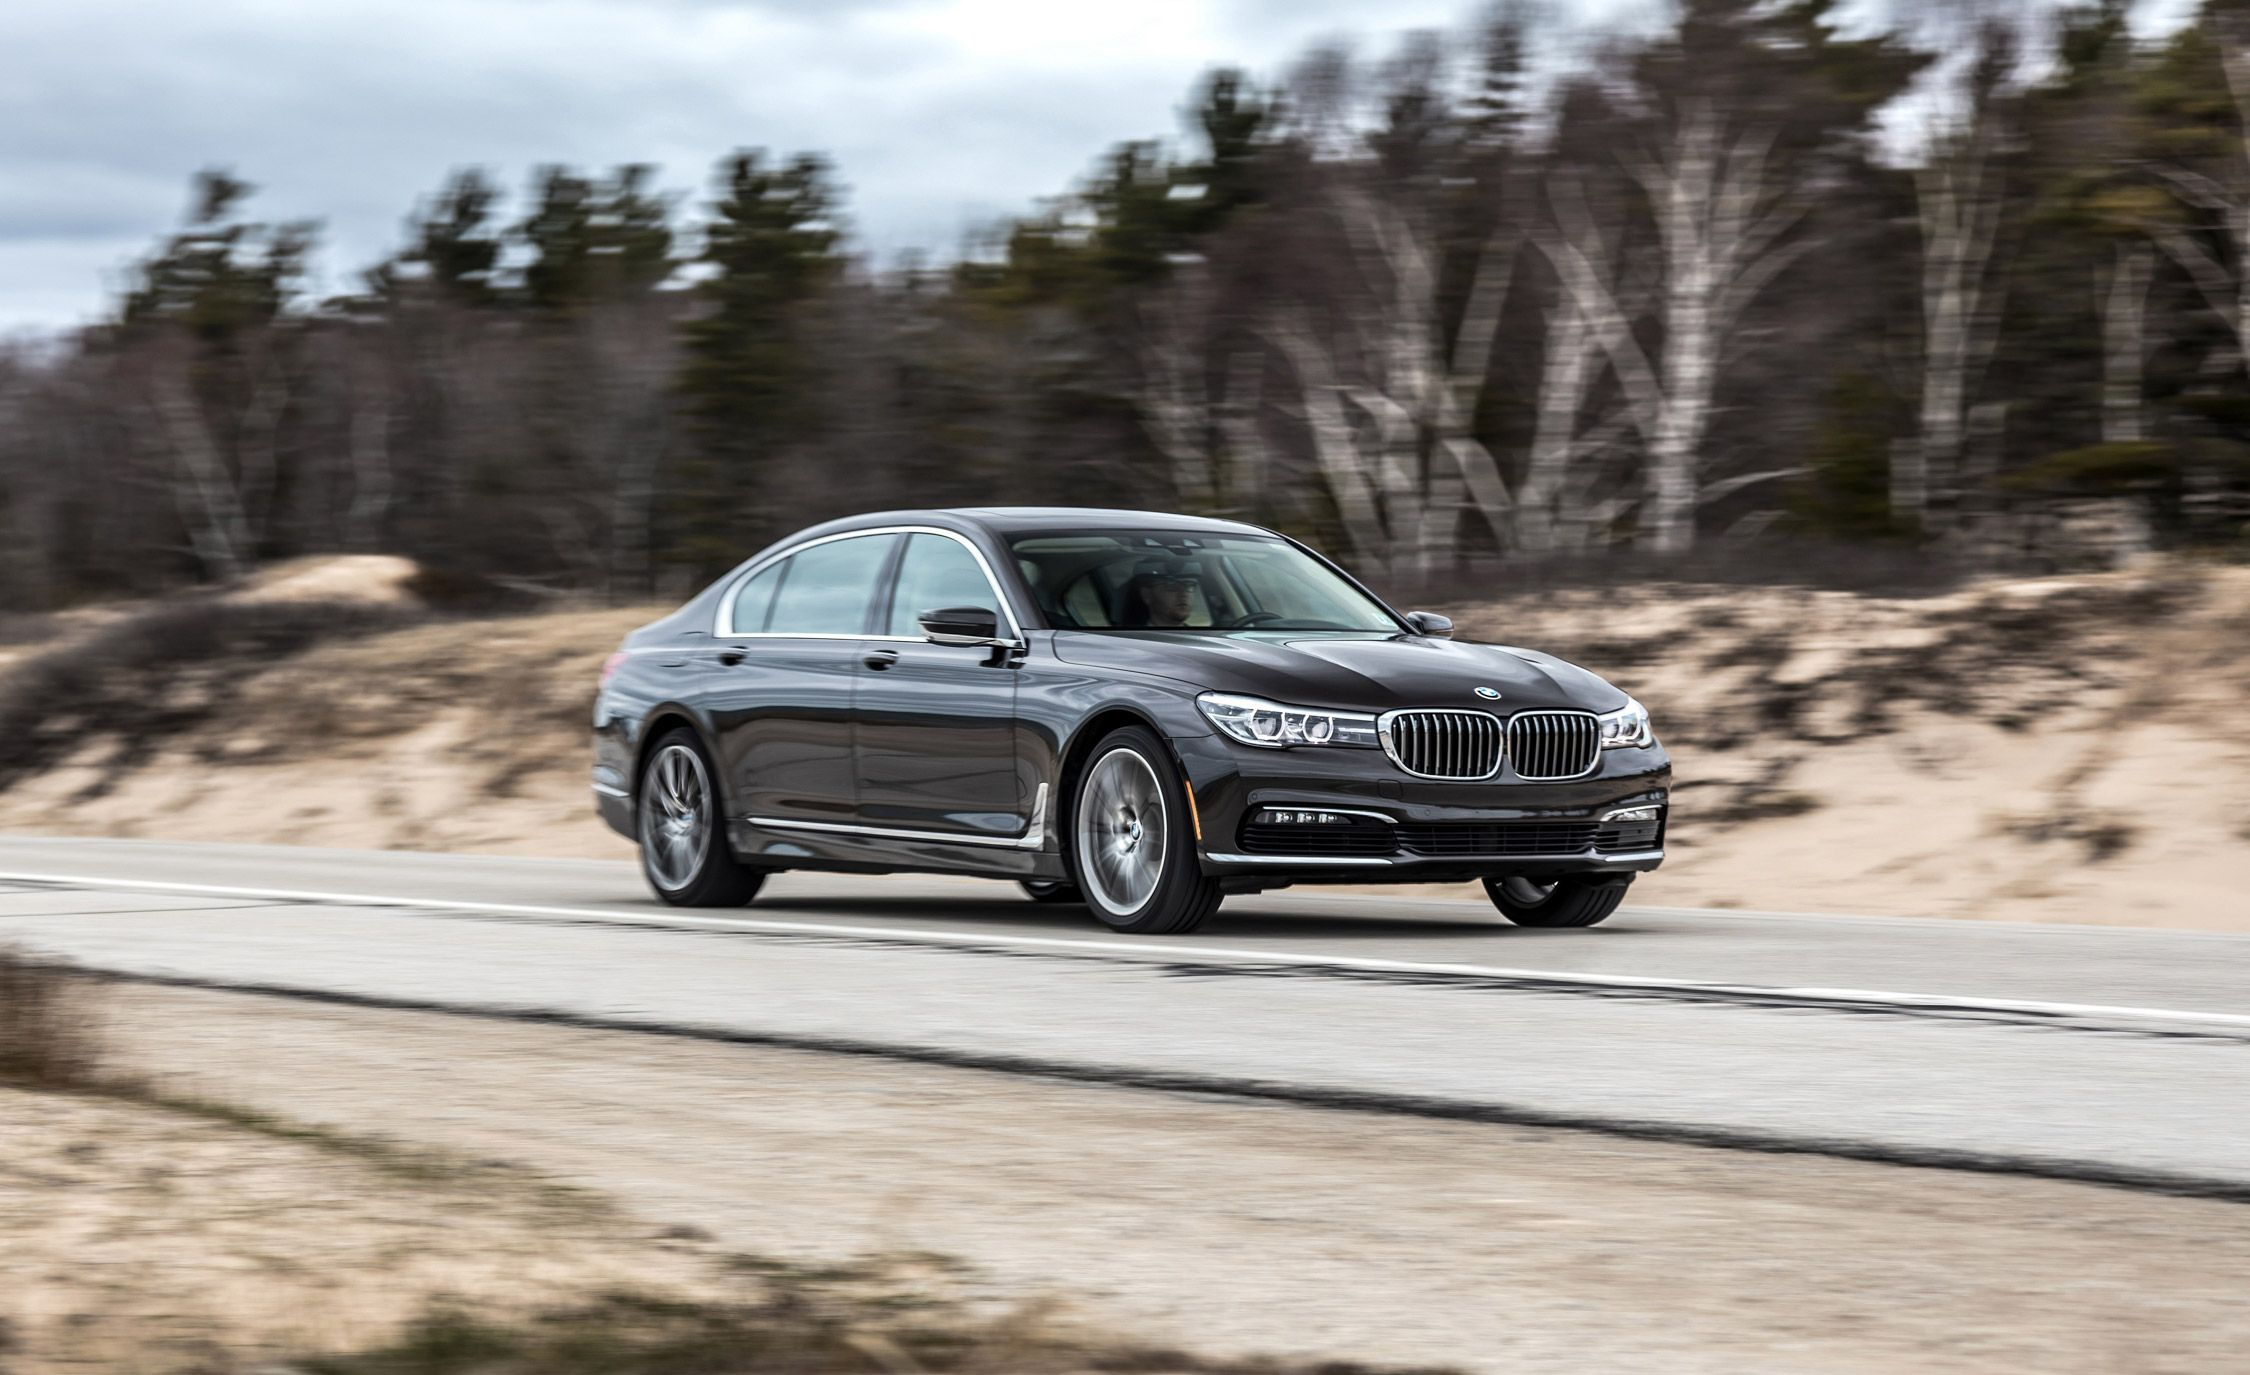 hight resolution of 2016 bmw 740i long term test review car and driver in addition 2000 bmw 740il double din radio on bmw 750li fuse diagram